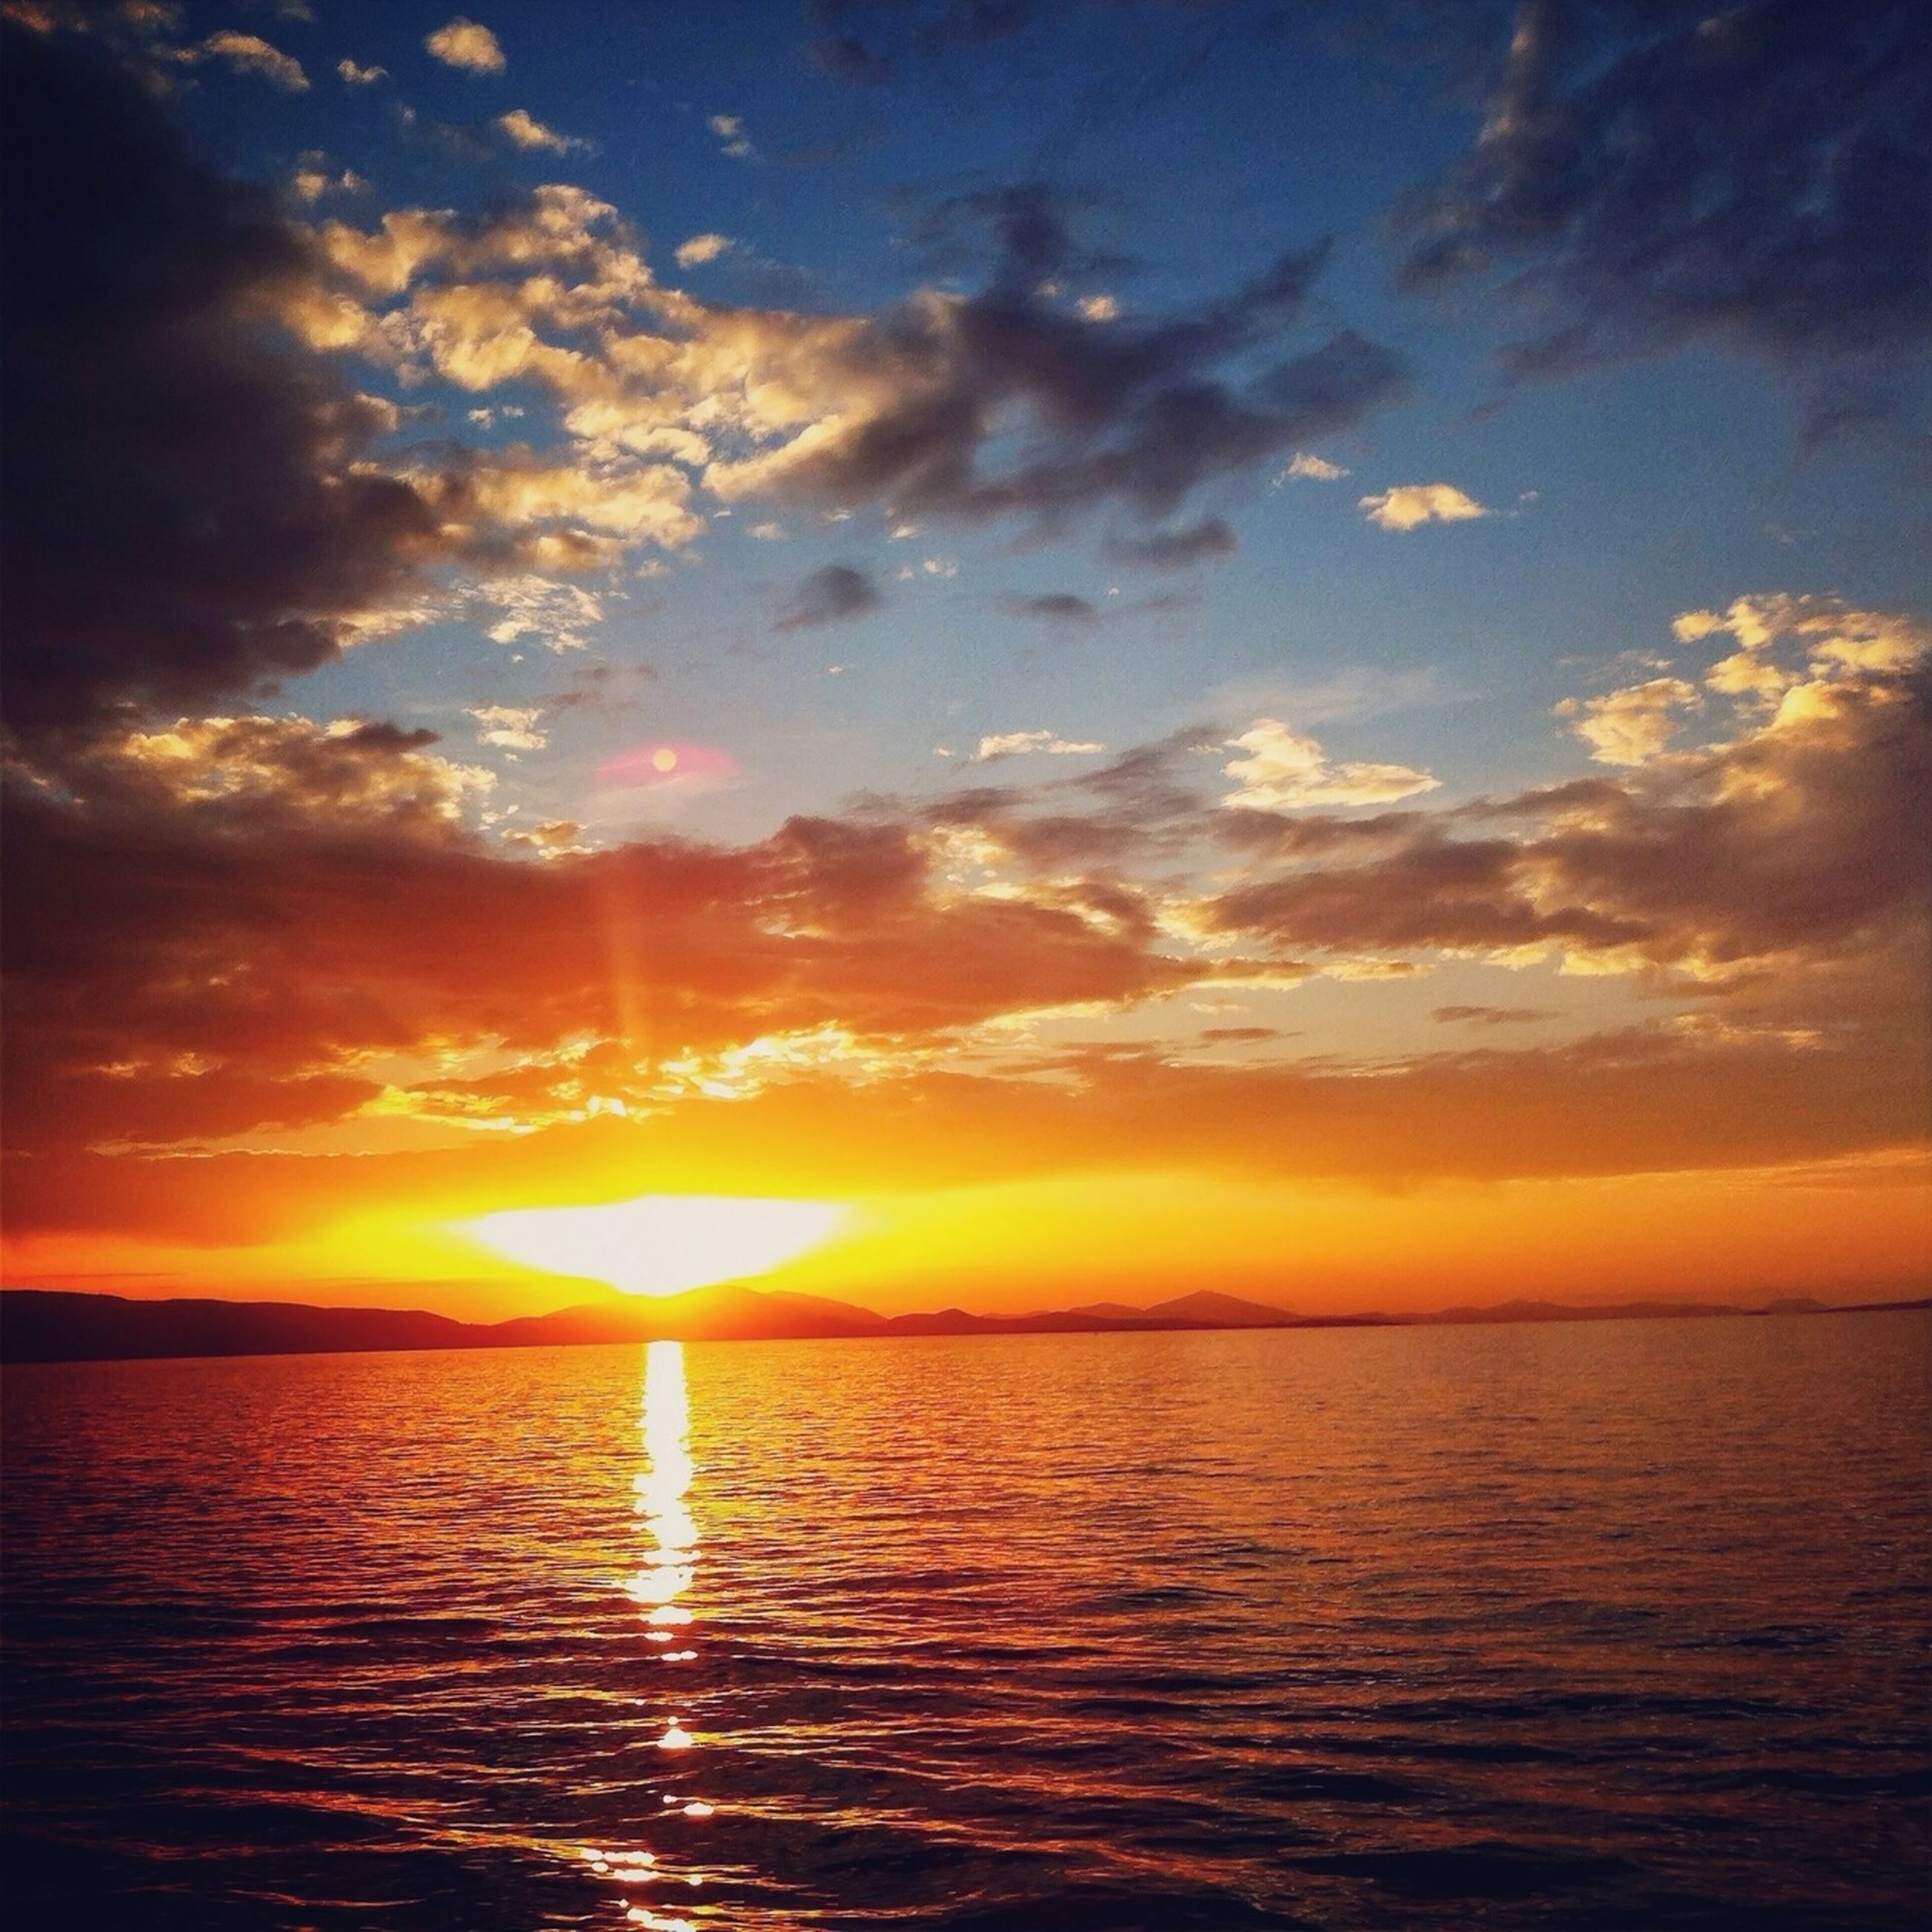 sunset, sea, water, scenics, sky, tranquil scene, beauty in nature, sun, tranquility, horizon over water, waterfront, orange color, idyllic, cloud - sky, nature, reflection, cloud, sunlight, rippled, dramatic sky